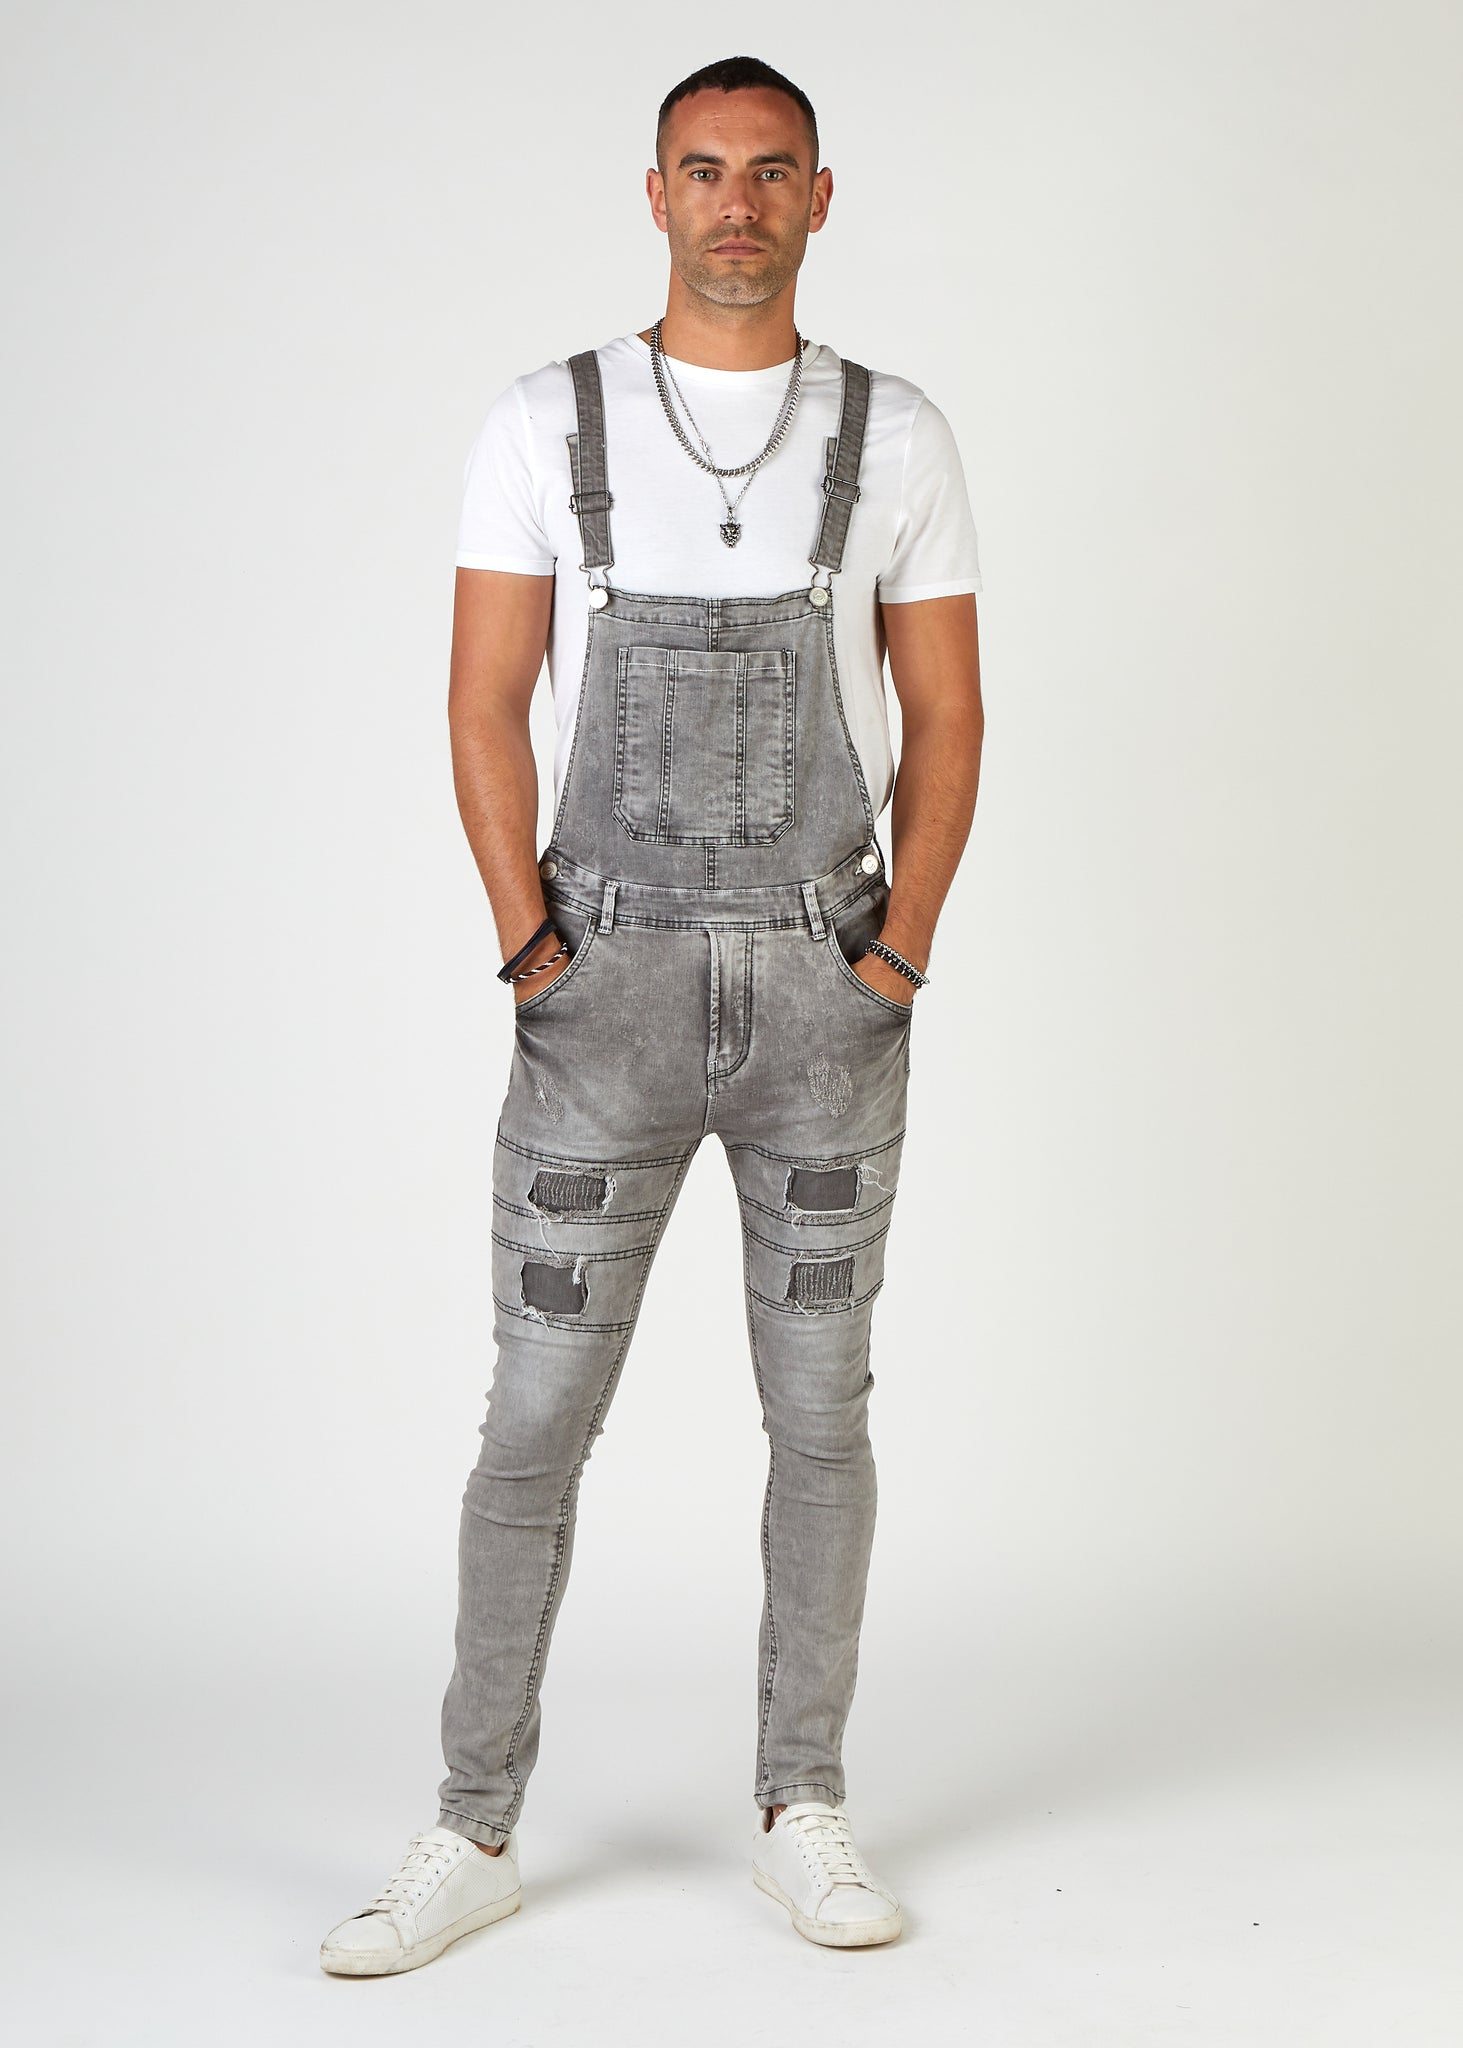 Frontal of 'Failsworth' brand men's super skinny bib overalls, with clear view of abrasions and repaired rips on thighs.